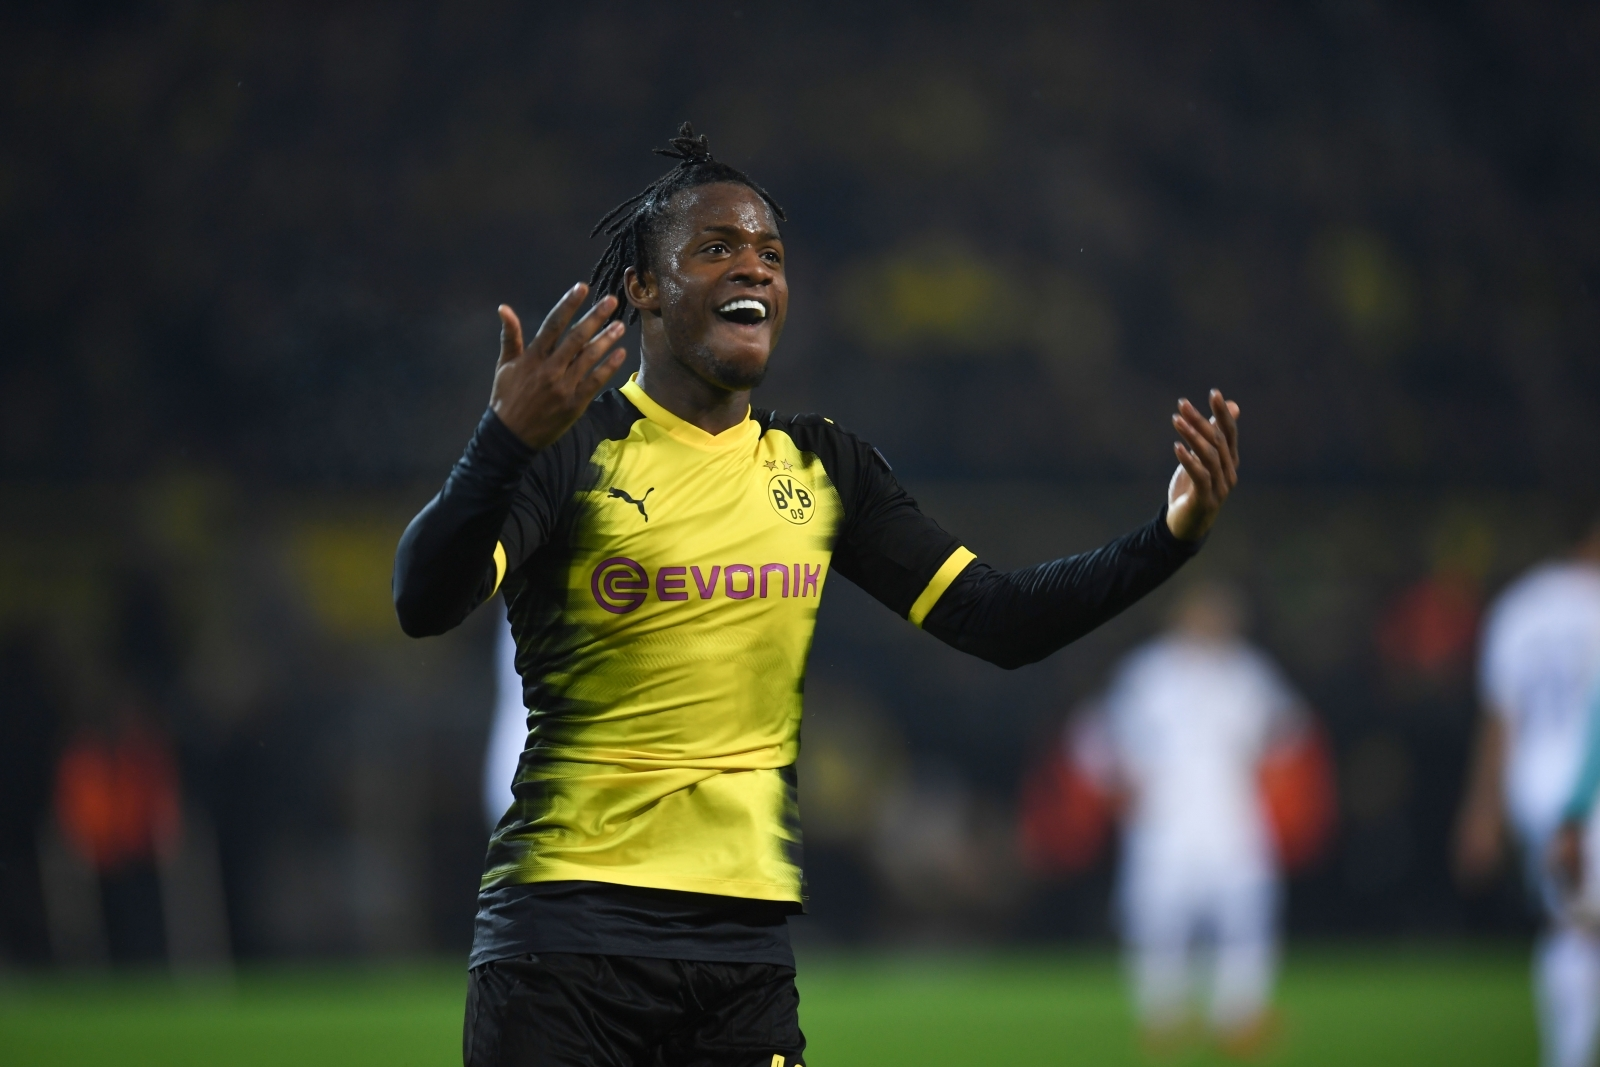 Batshuayi admits Chelsea struggles and Dortmund start